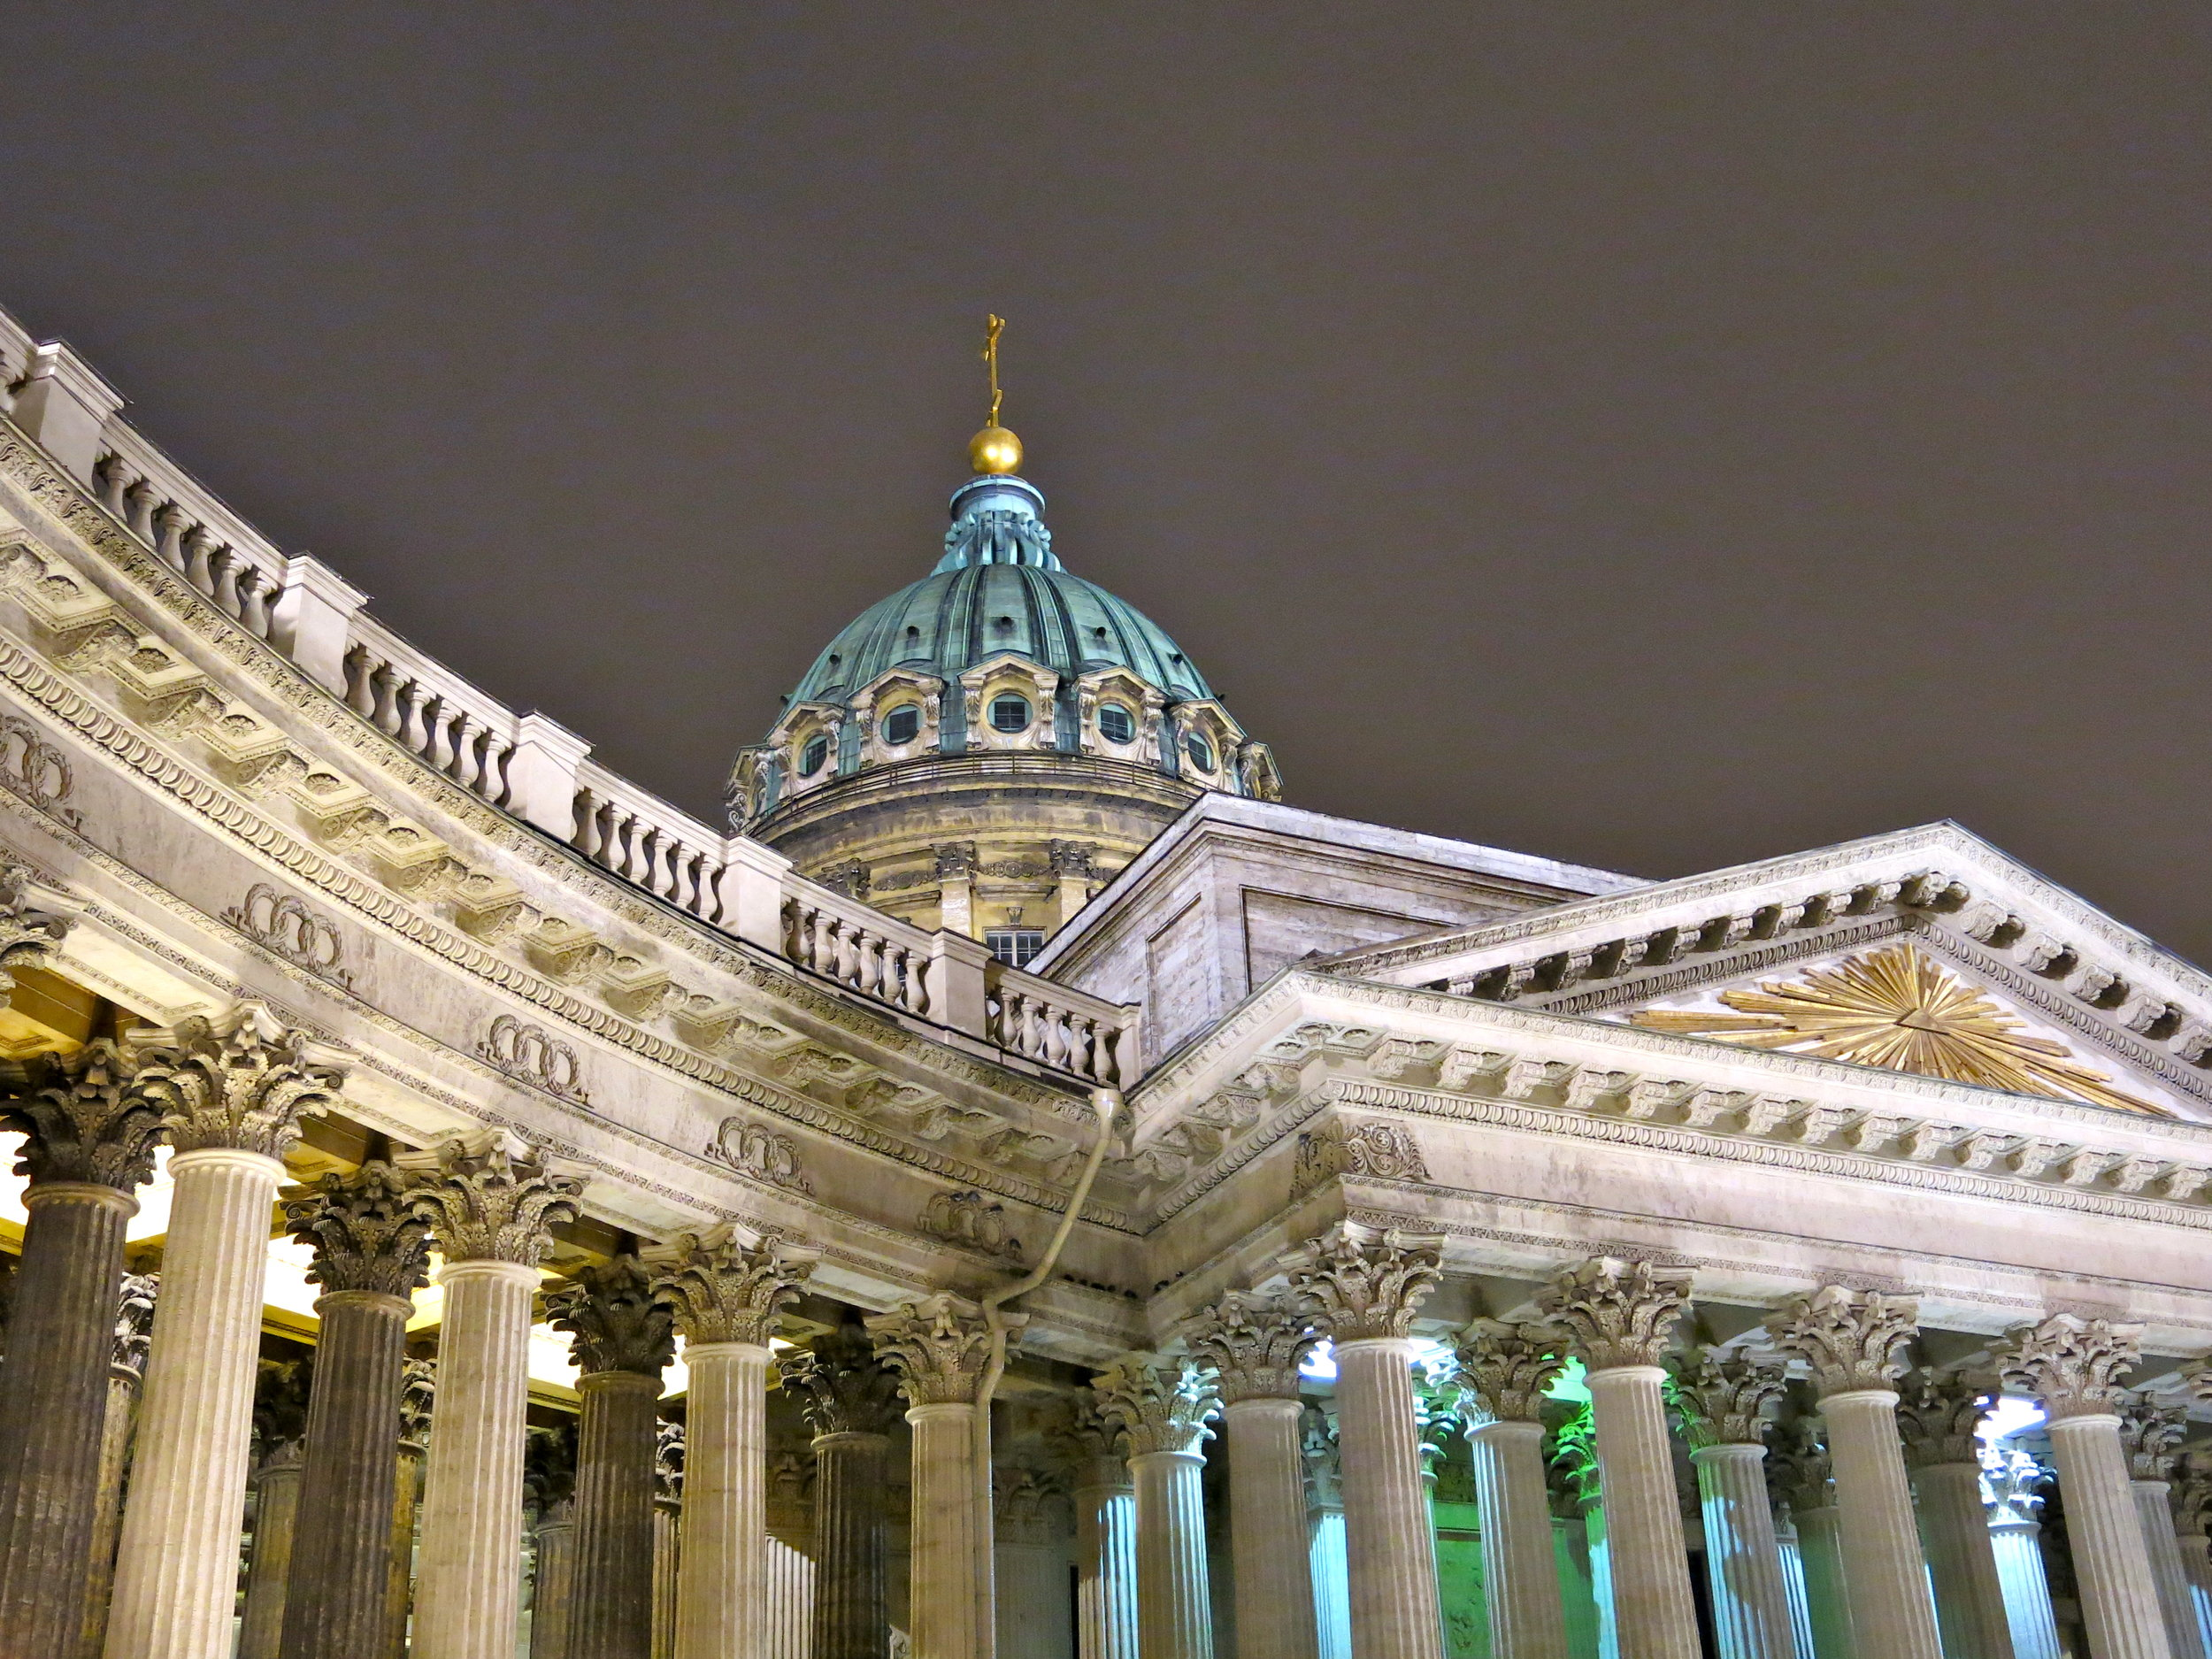 The colonnade in front of Kazan Cathedral and its giant dome